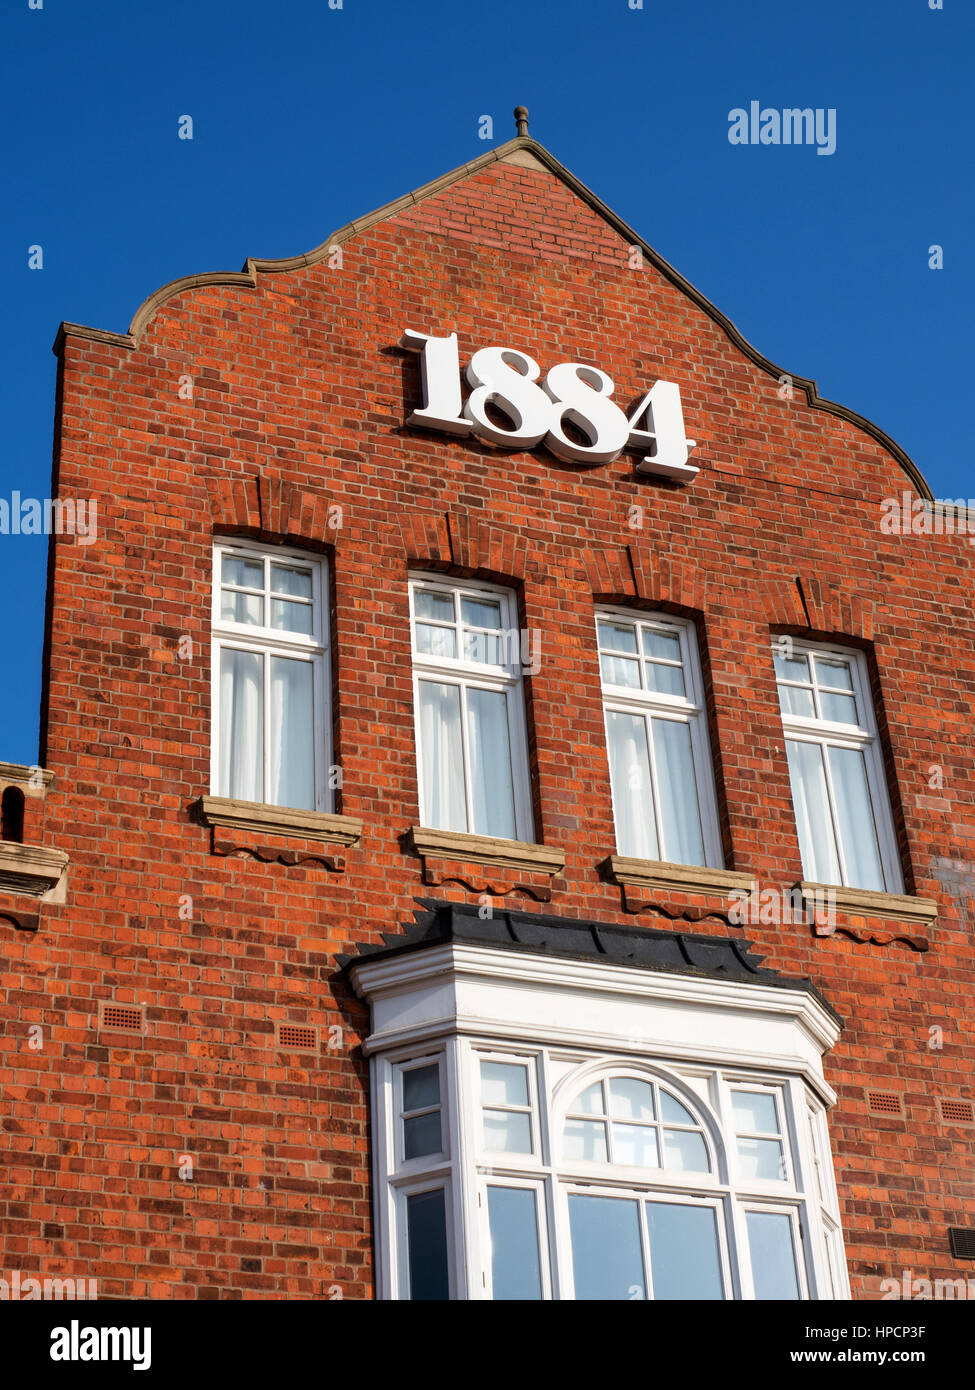 Hessle Gate Buildings Former Rope Factory now a Restaurant on Humber Dock Street Hull Yorkshire England - Stock Image